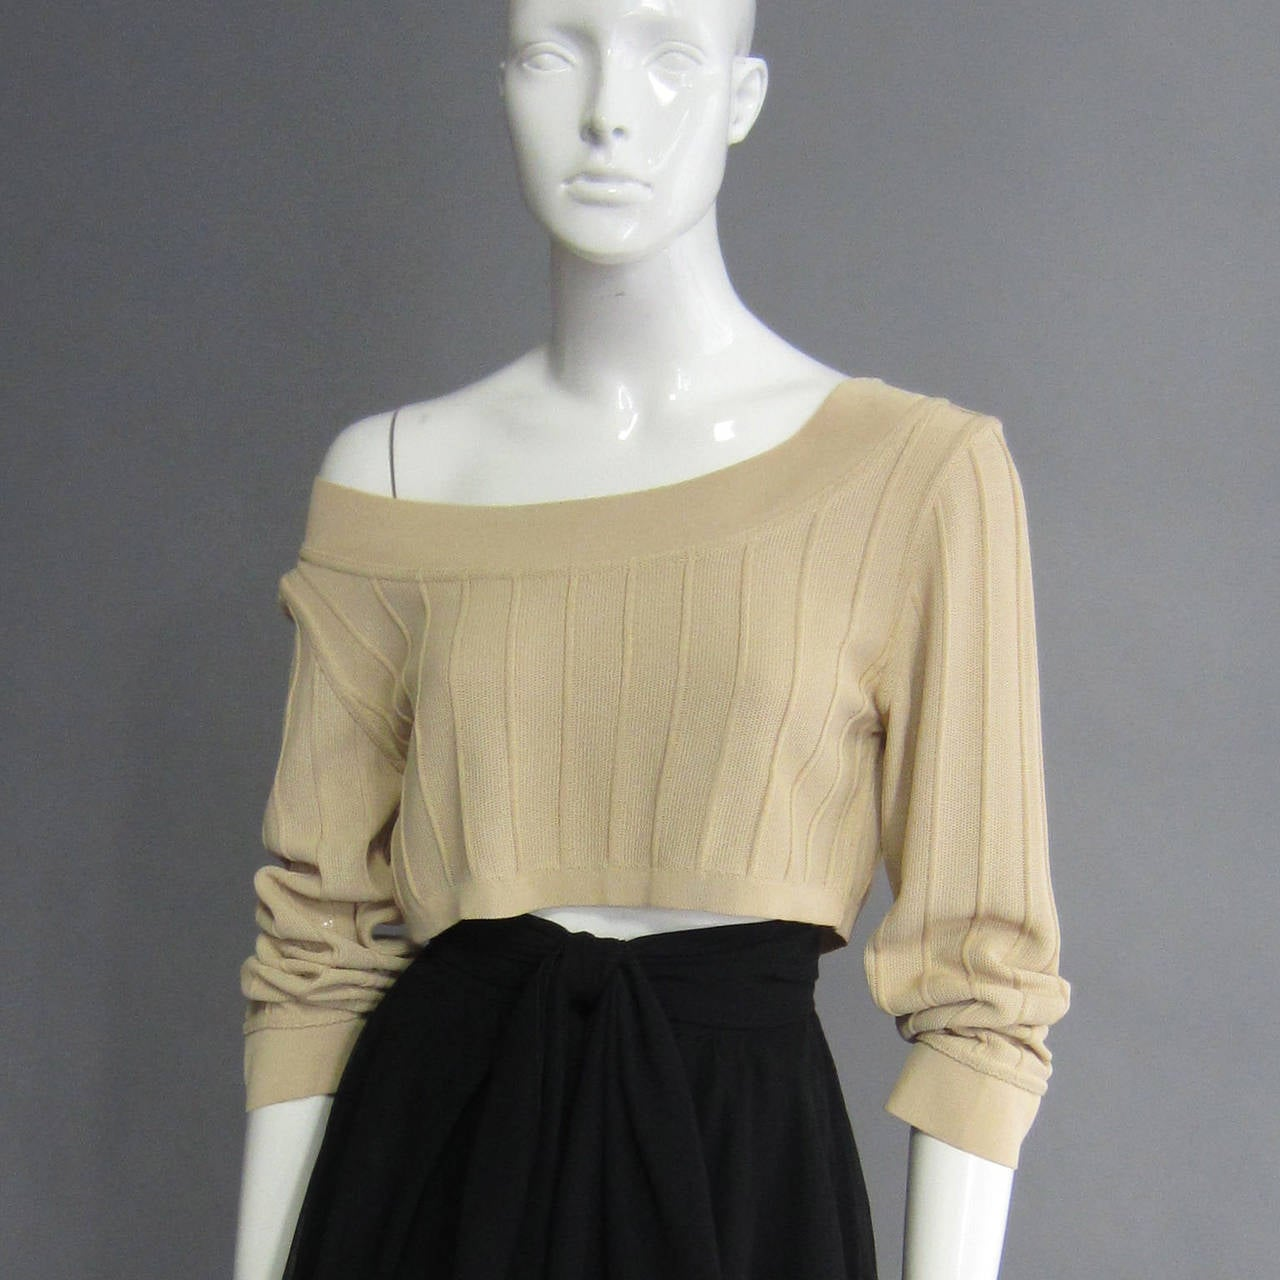 ALAIA Crop Top with Seam Detailing In Excellent Condition For Sale In New York, NY